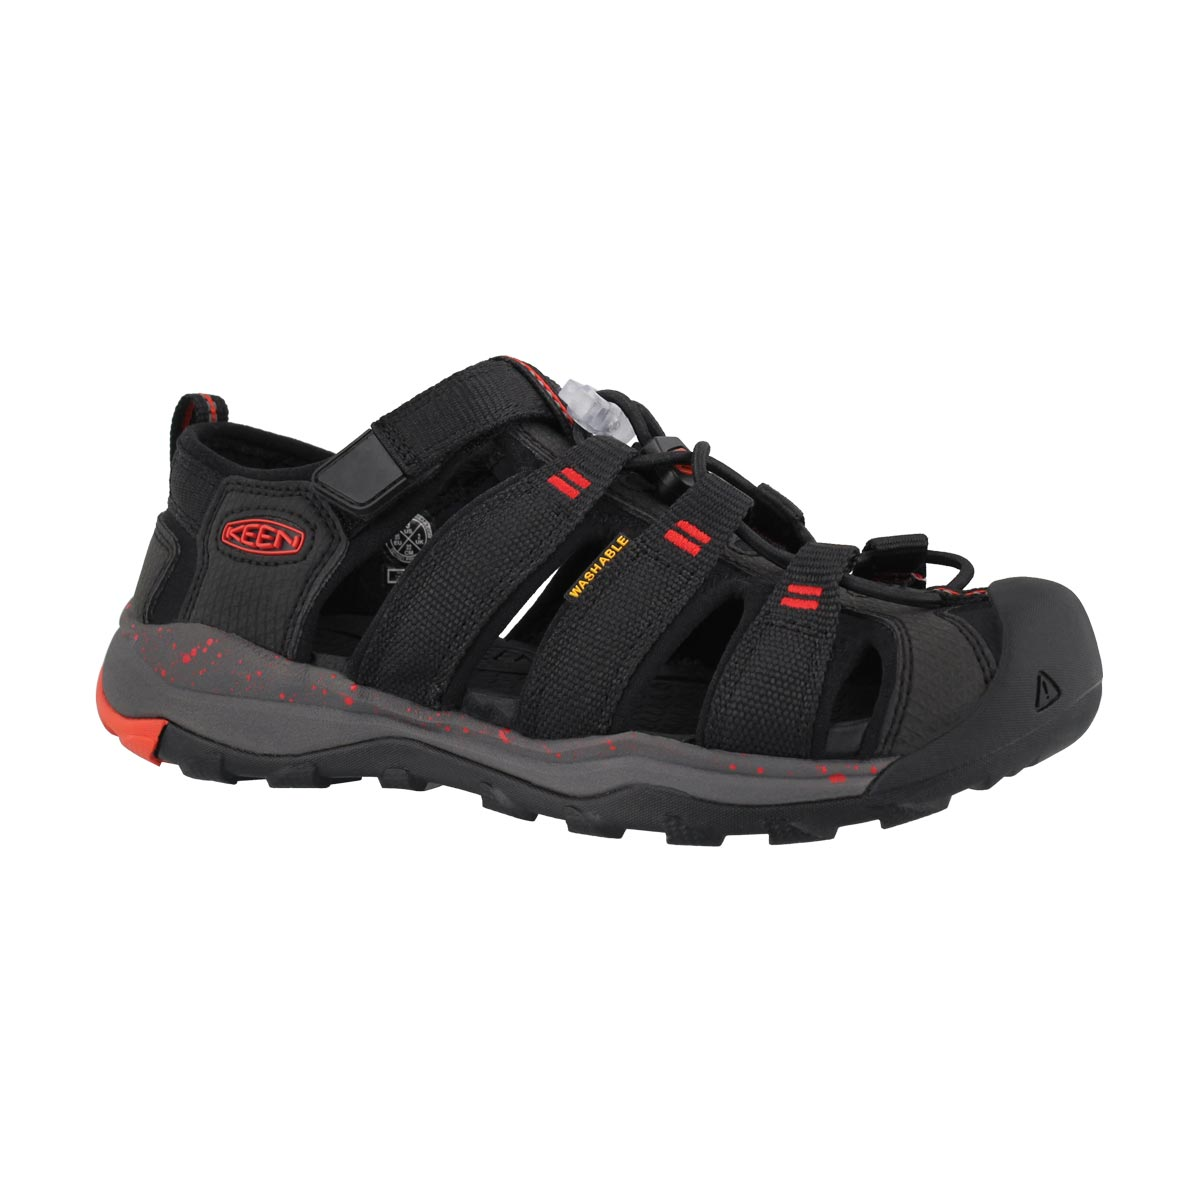 Boys' NEWPORT NEO H2 blk/firey red sandals